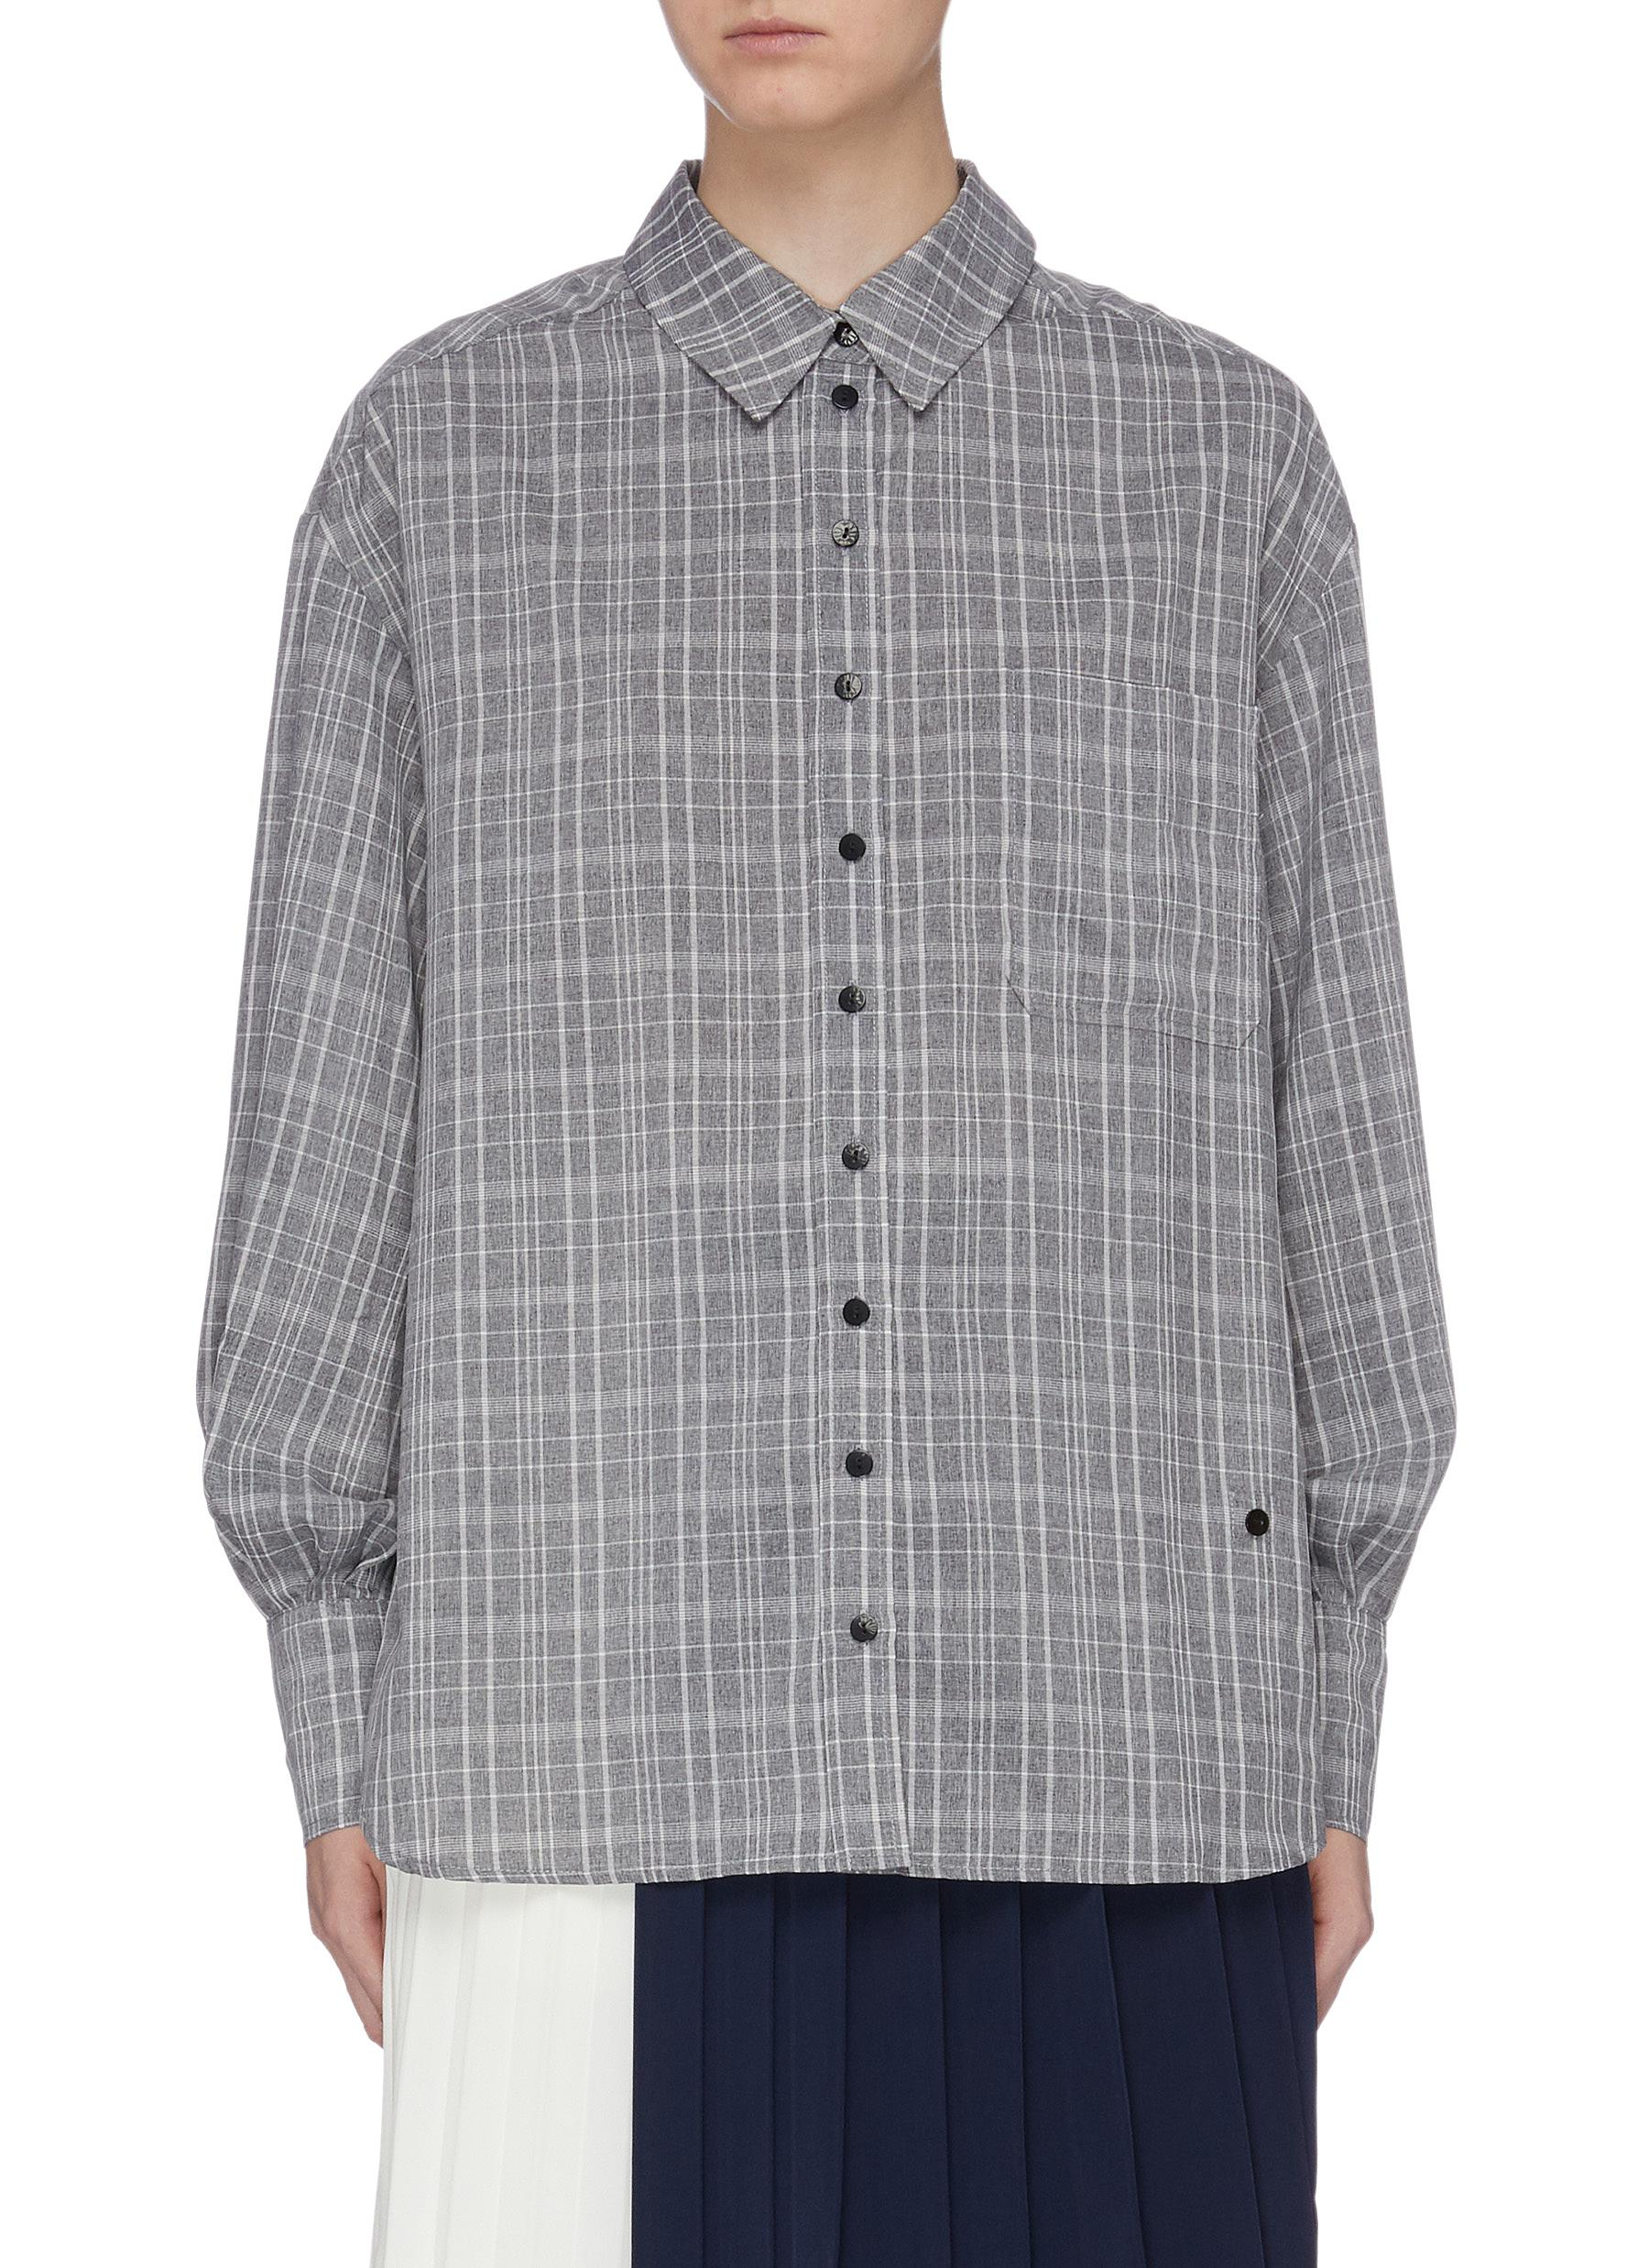 Patch pocket check plaid oversized shirt by Mijeong Park